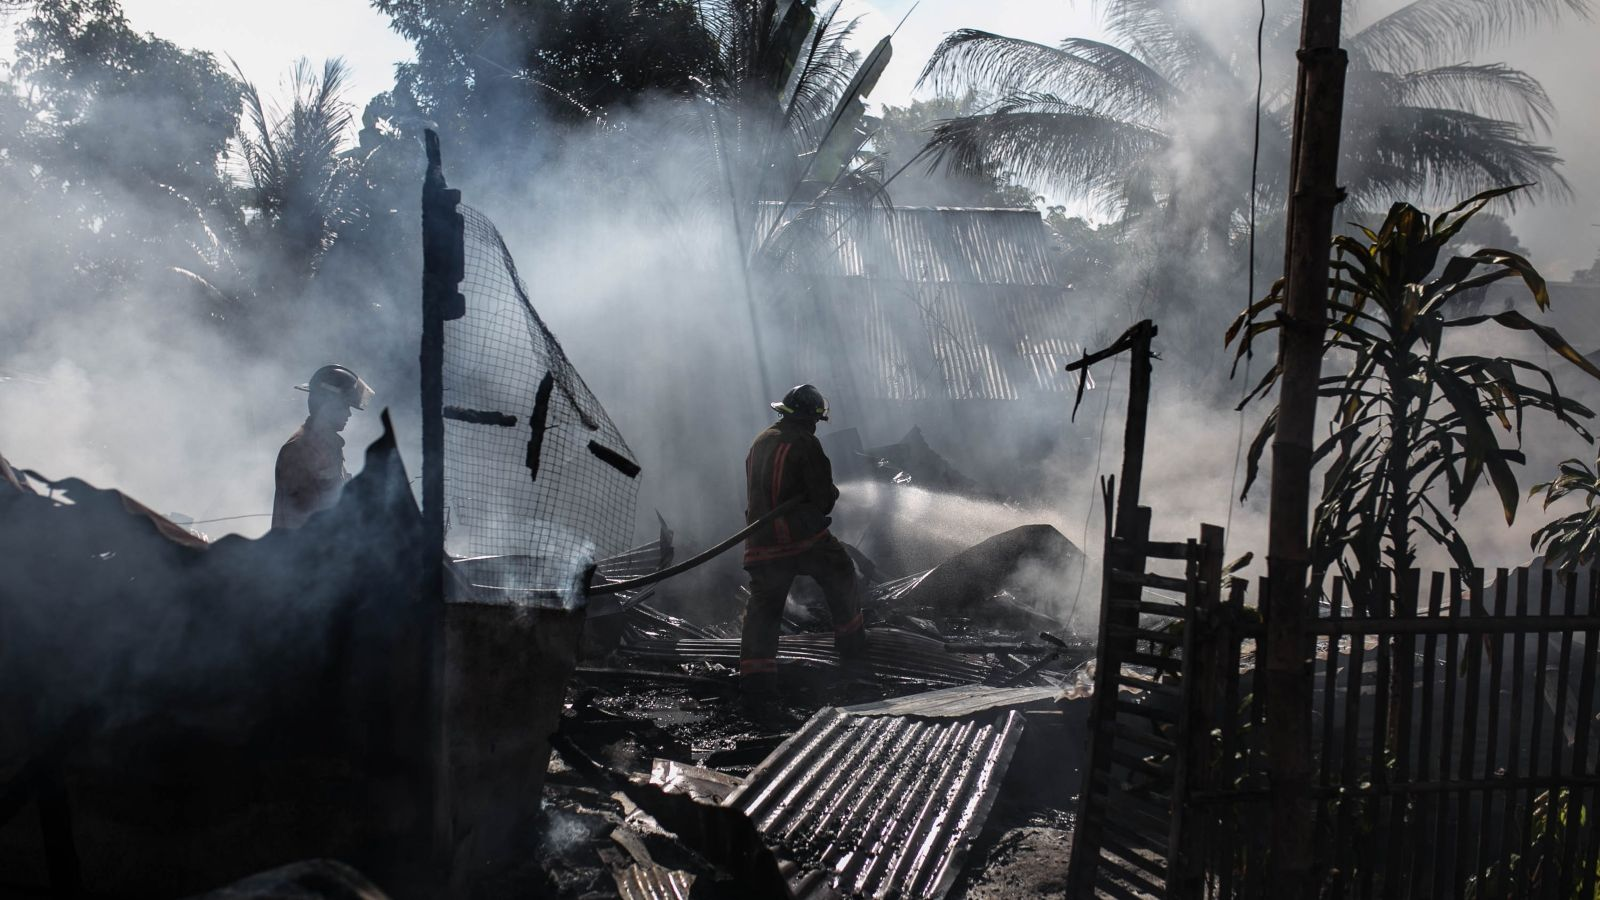 Silhouettes of two firefighters in helmets spraying water on burnt tropical shanty house with corrugated roof iron in foreground. Aftermath of fire in Philippines. Photo: Denniz Futalan, Pexels.